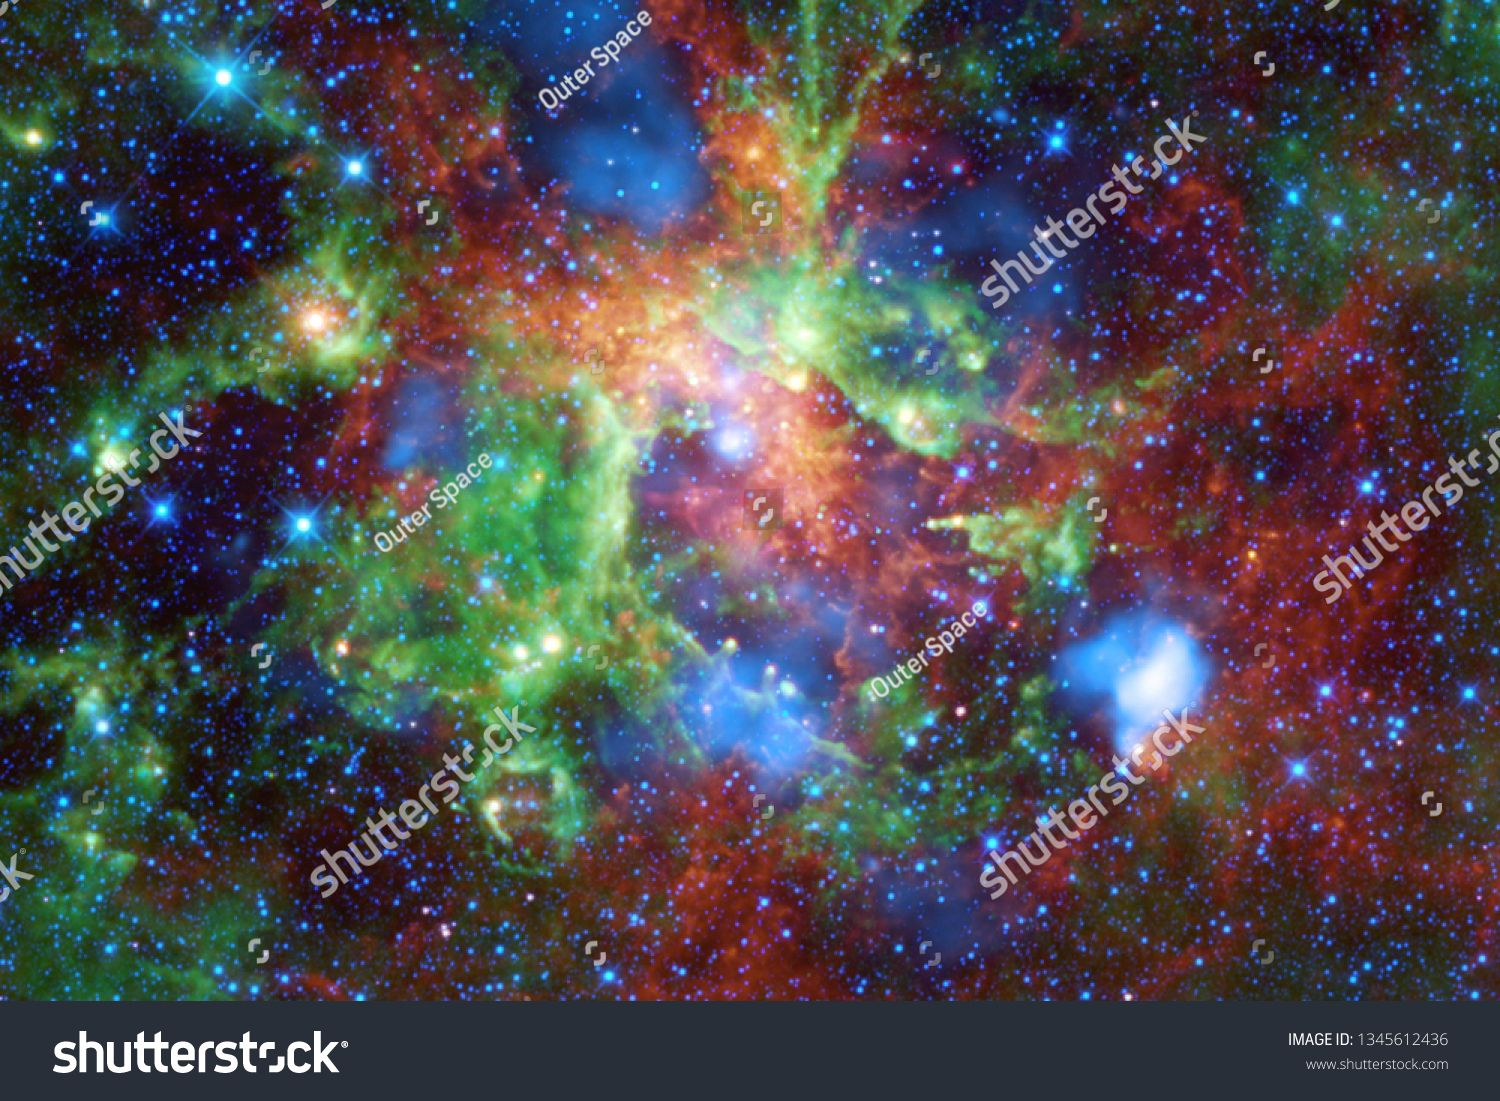 Beautiful nebula starfield cluster of stars in outer space Science fiction art Elements of this image furnished by NASA